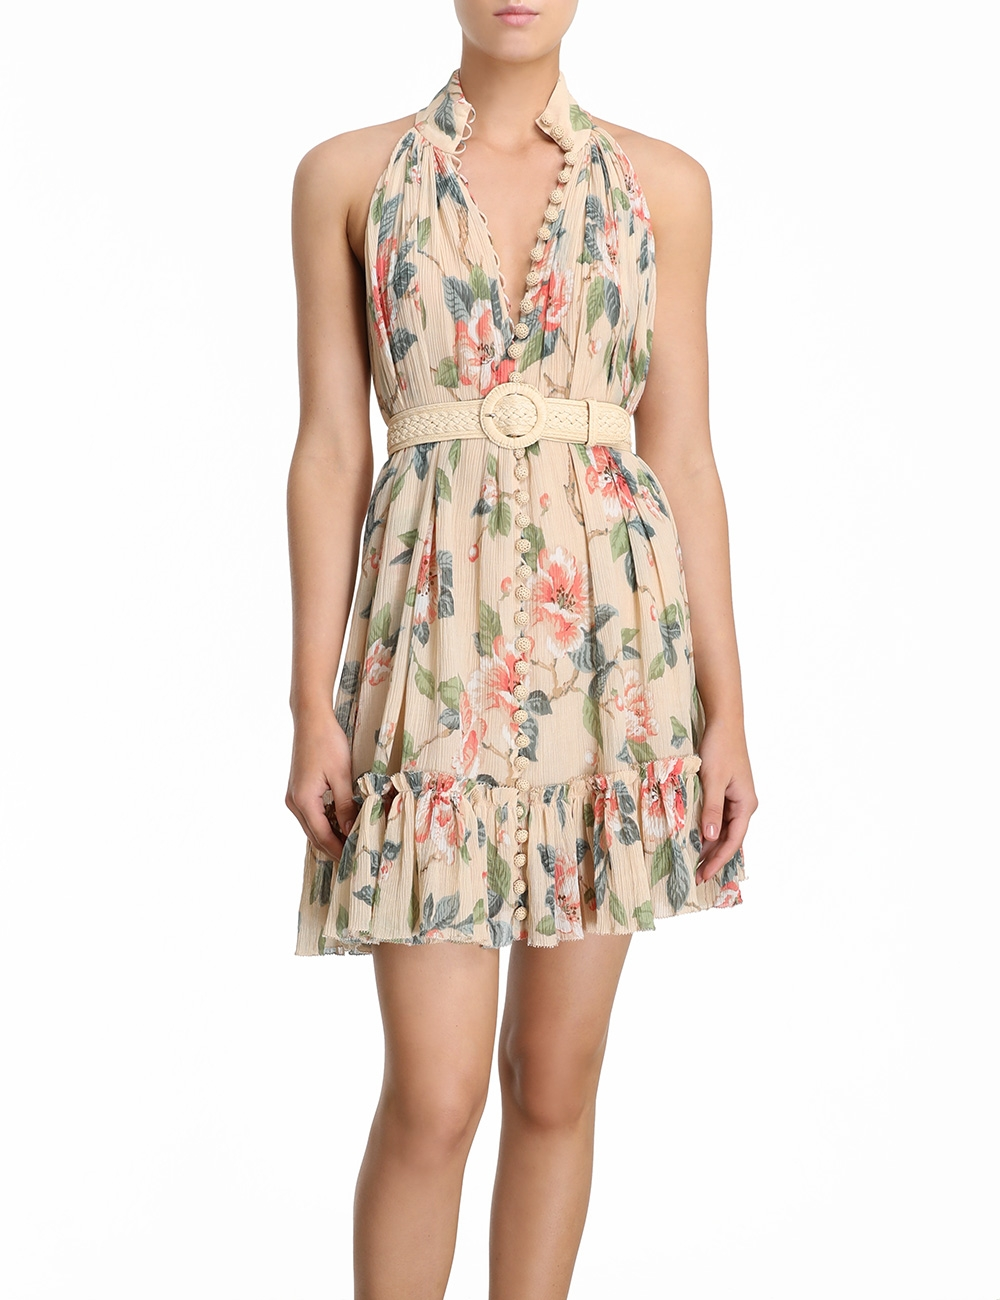 Kirra Short Halter Dress